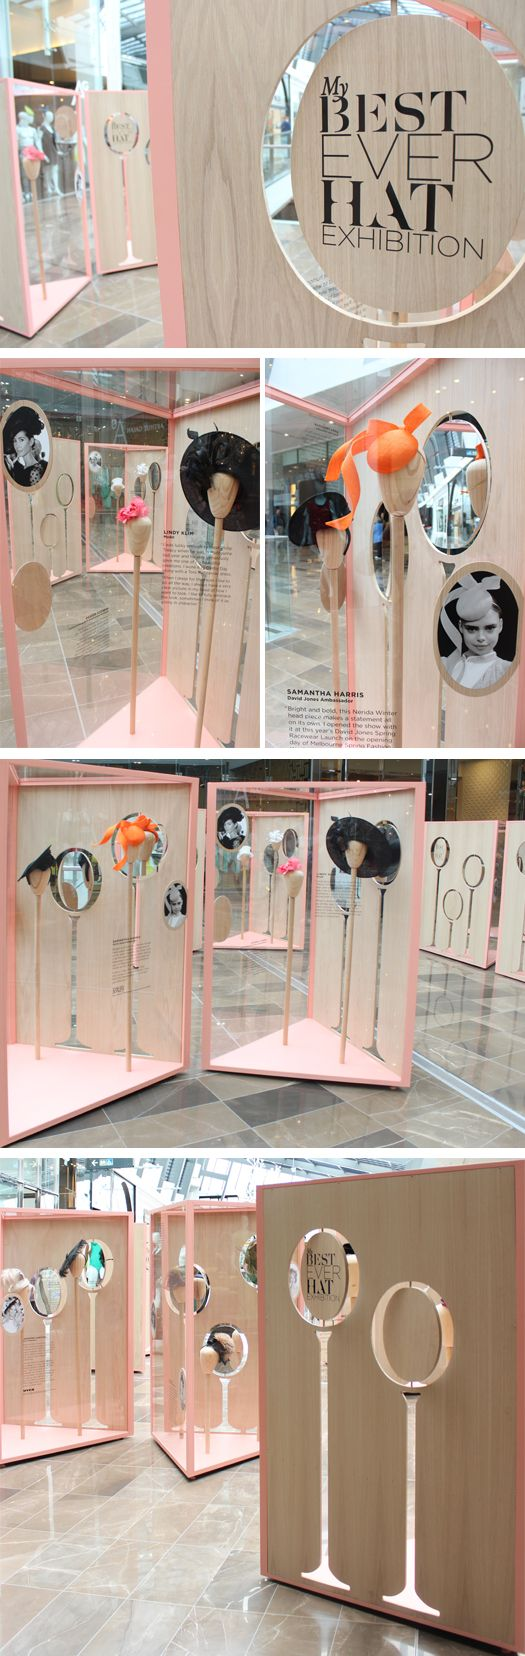 [Raw materials juxtaposed with refined elements are TRENDING.  As are dress-up photo booths with fun props as promotions for exhibit booths / stands / events -area]